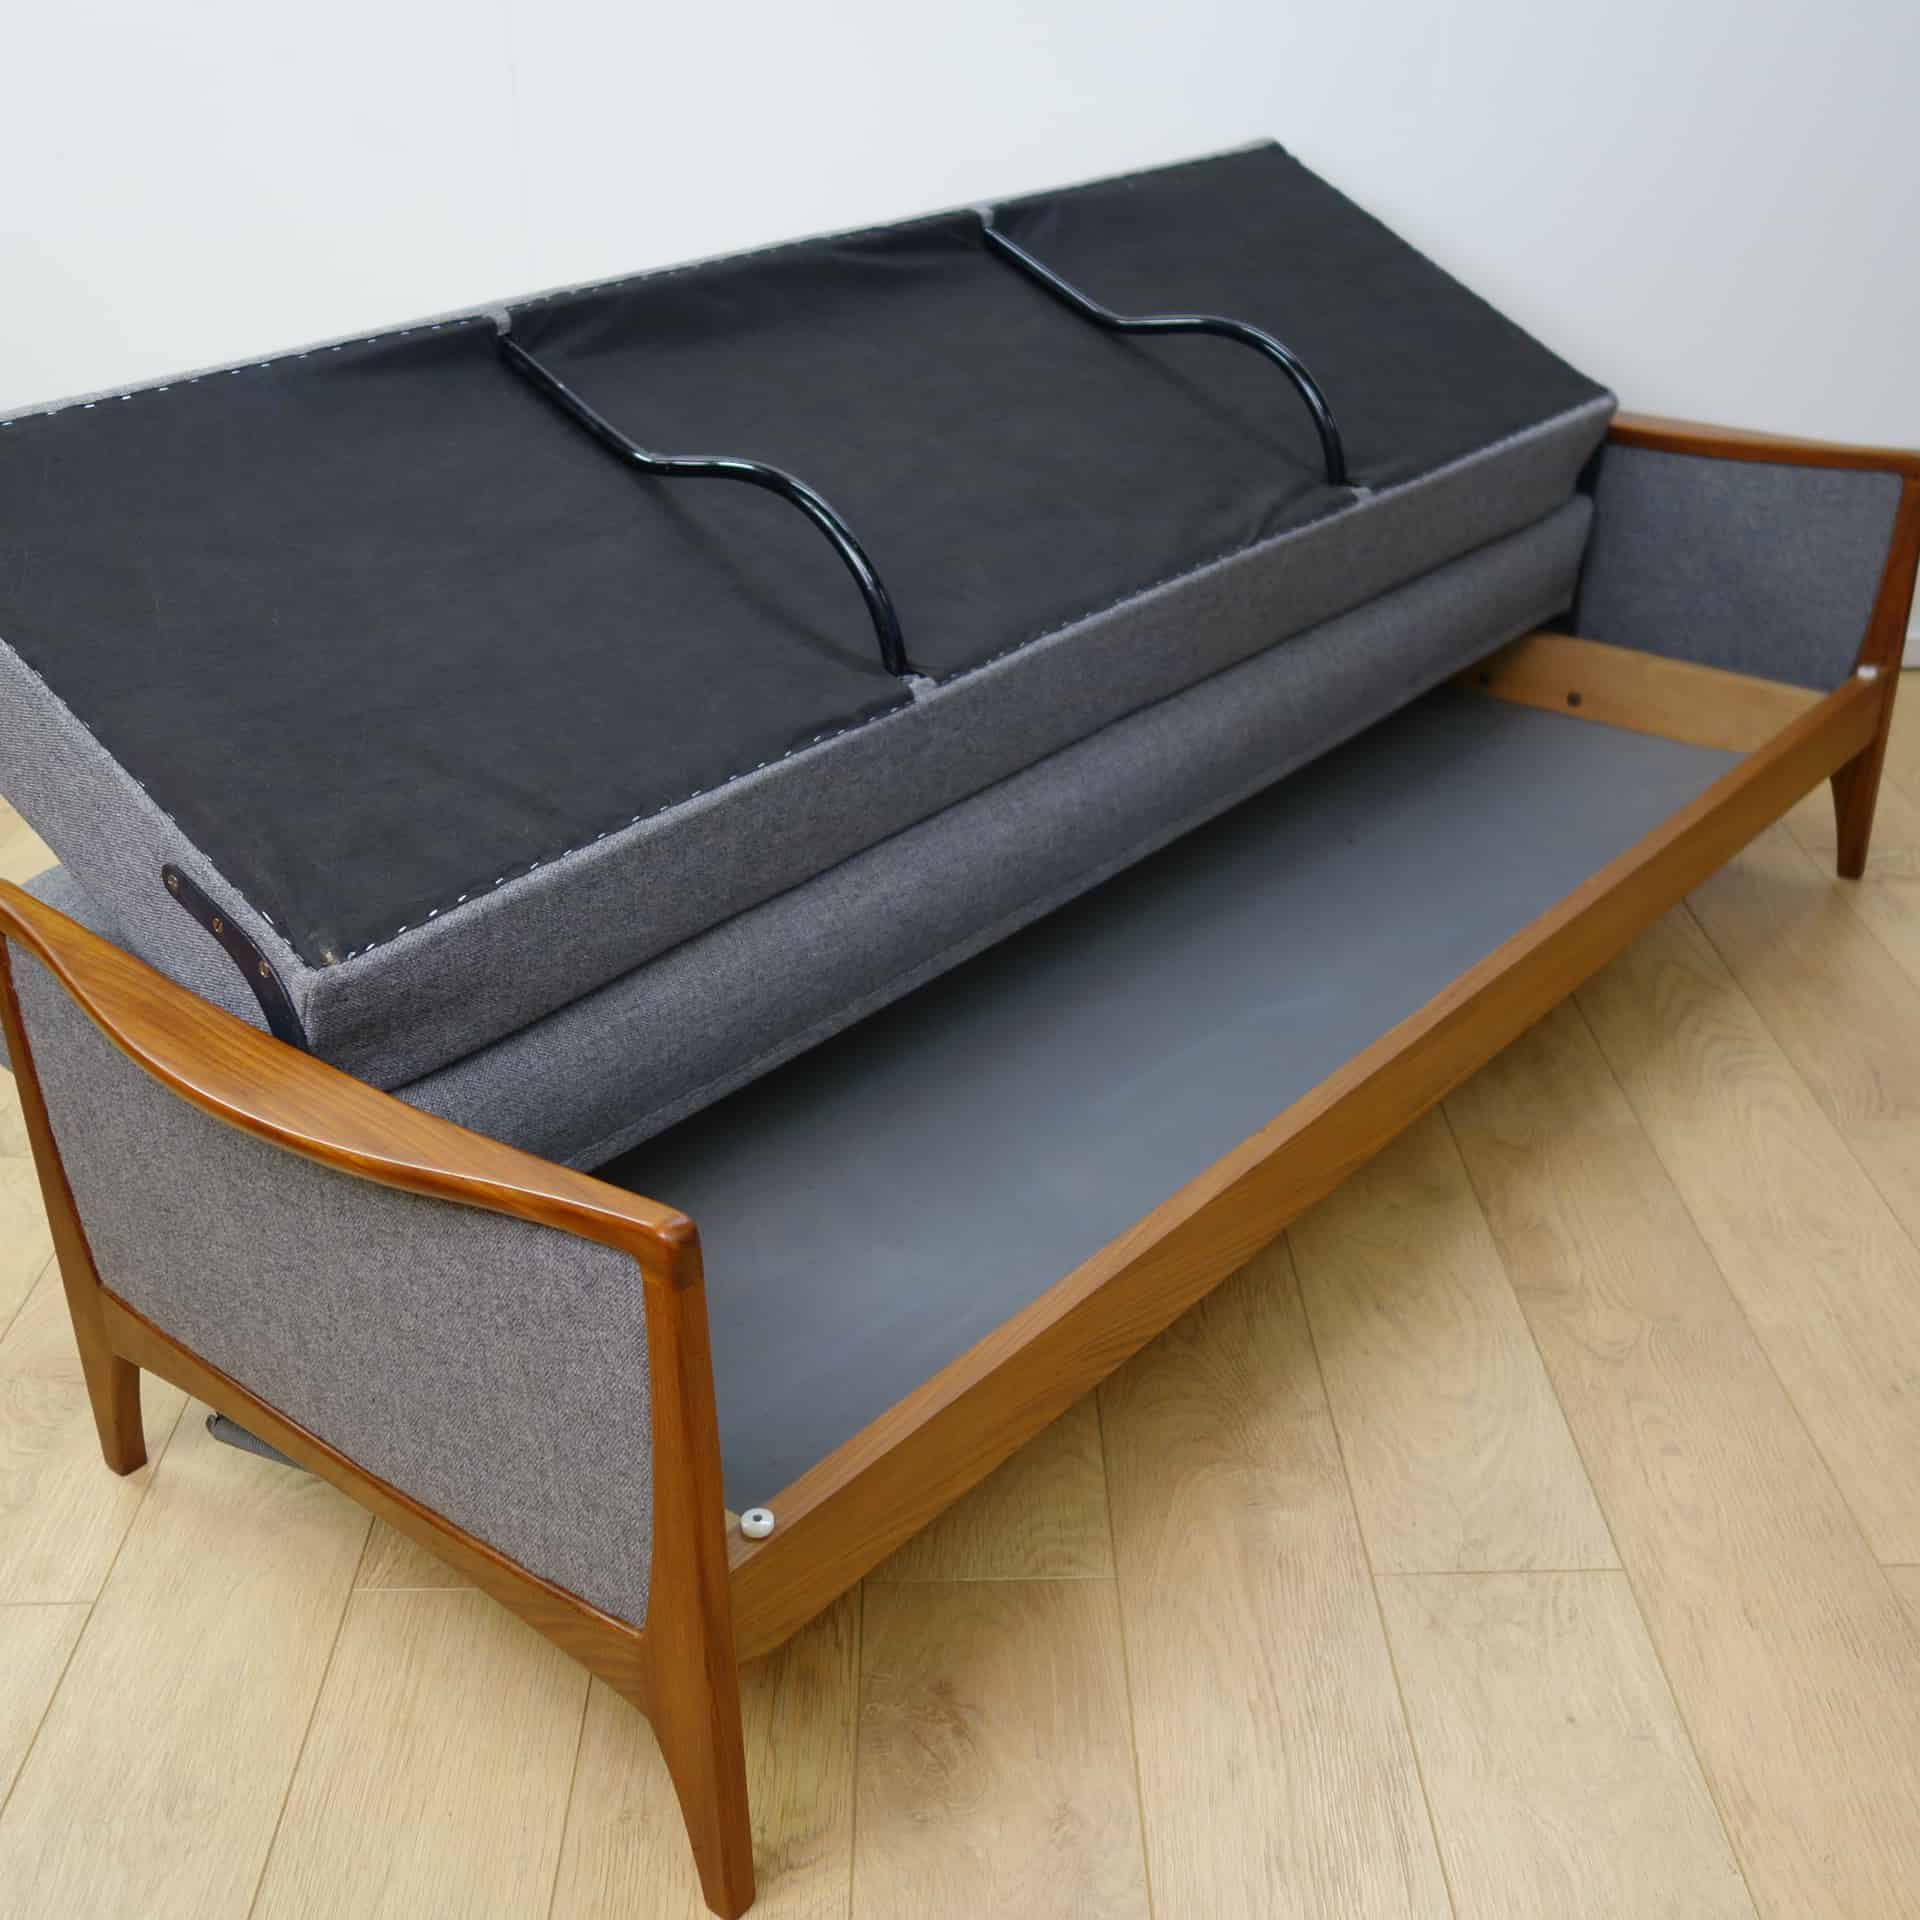 g plan sofa 66 ashley furniture leather reclining 1960s teak sofabed by mark parrish mid century modern